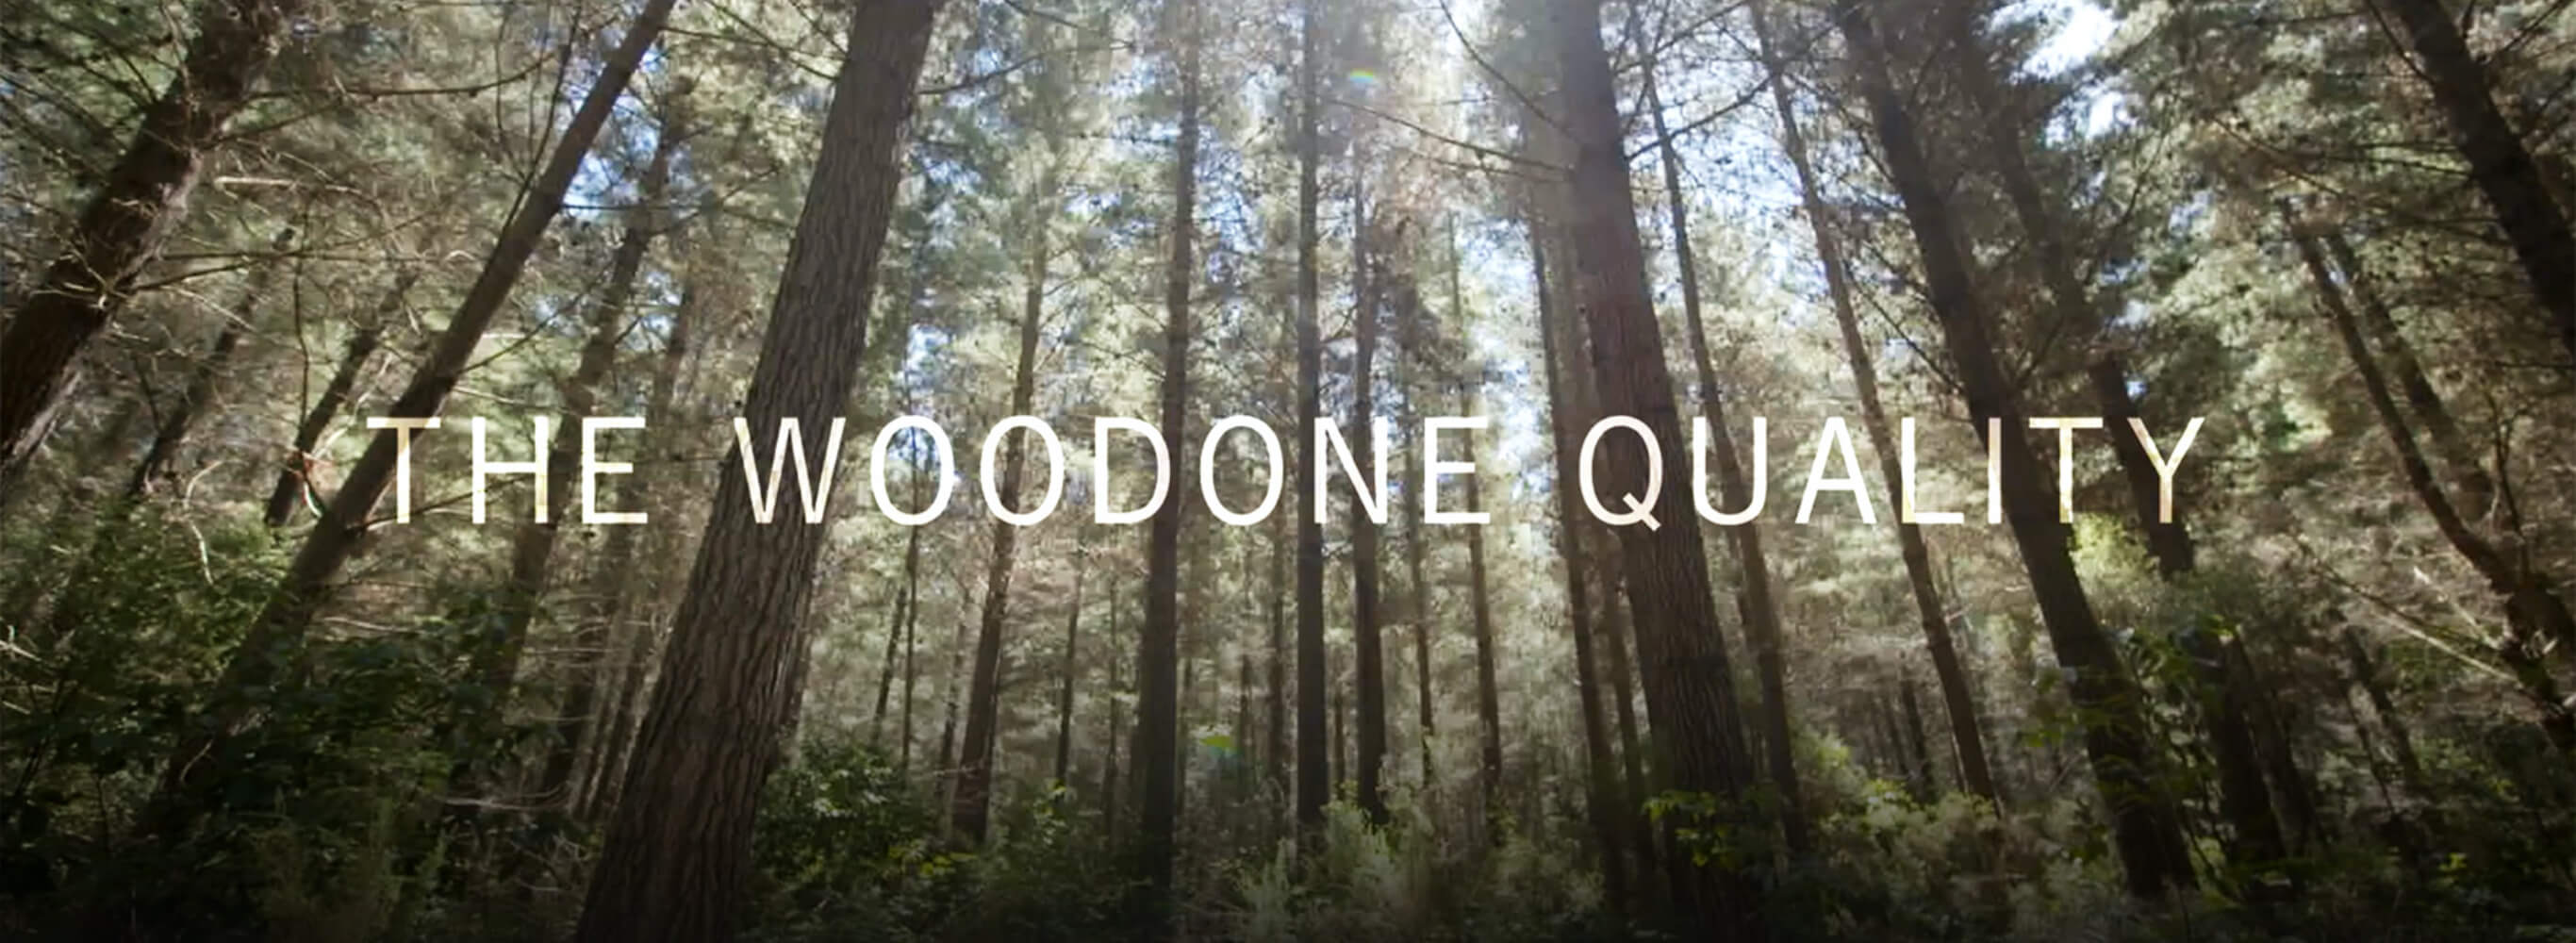 THE WOODONE QUALITY